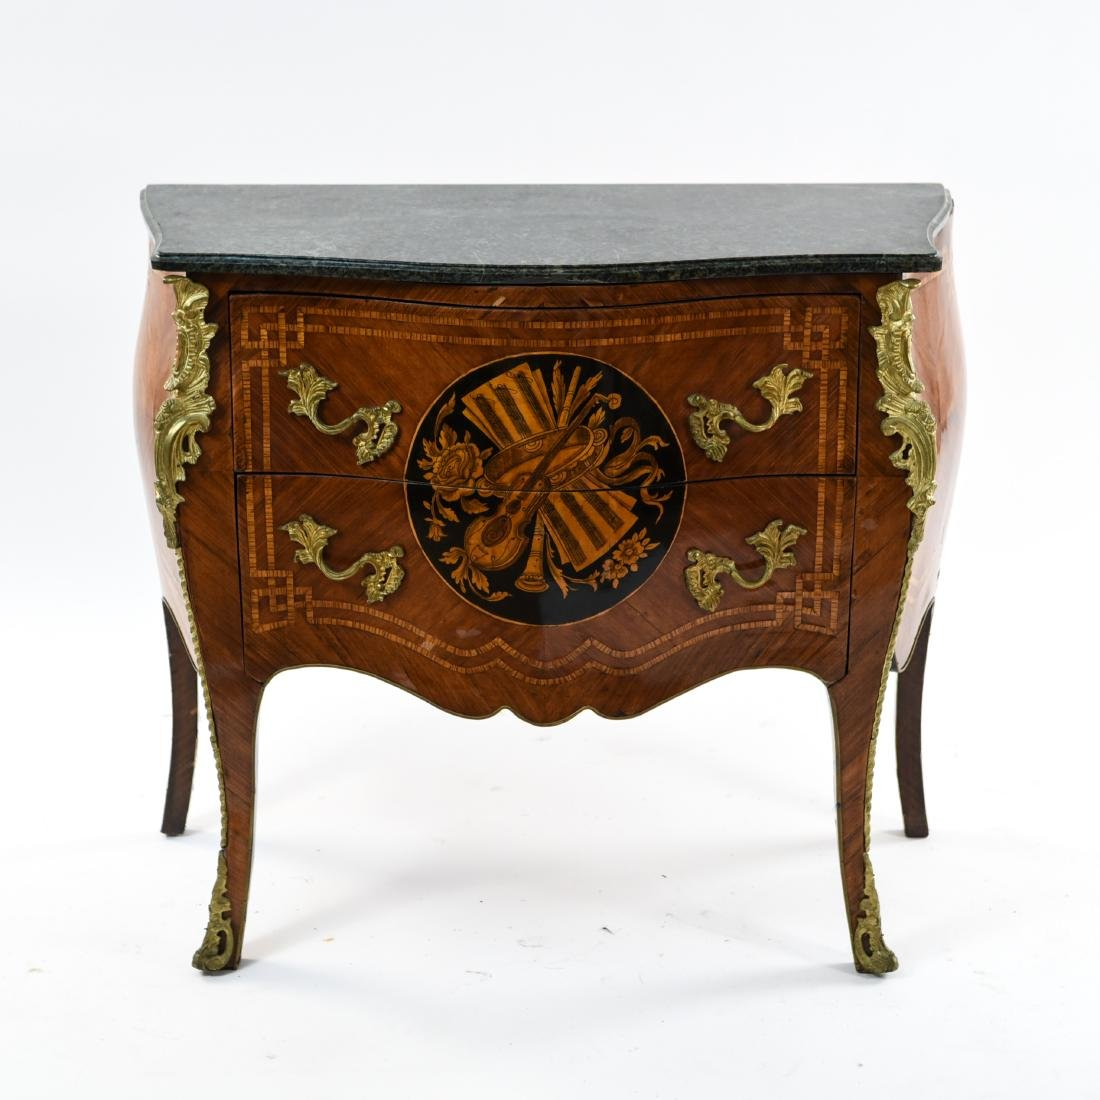 20TH C. DECORATIVE FRENCH MARBLE TOP COMMODE